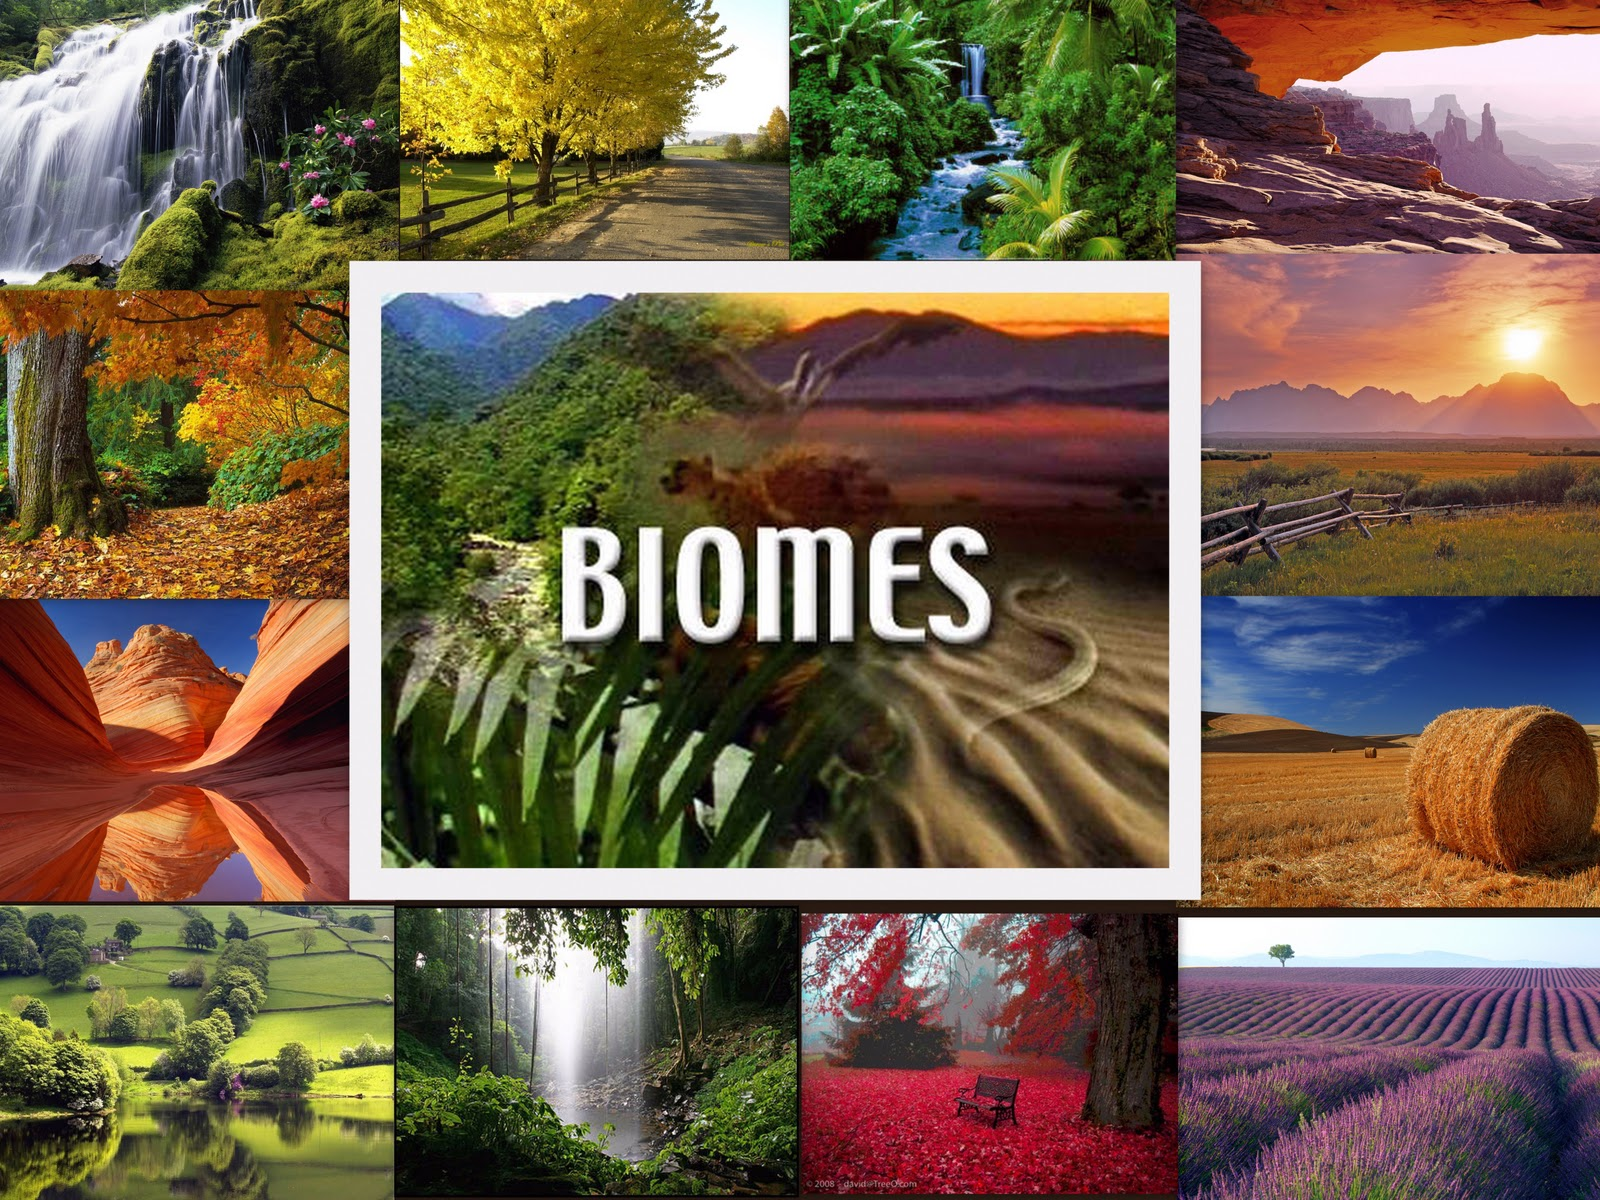 Maccused Biomes Collage